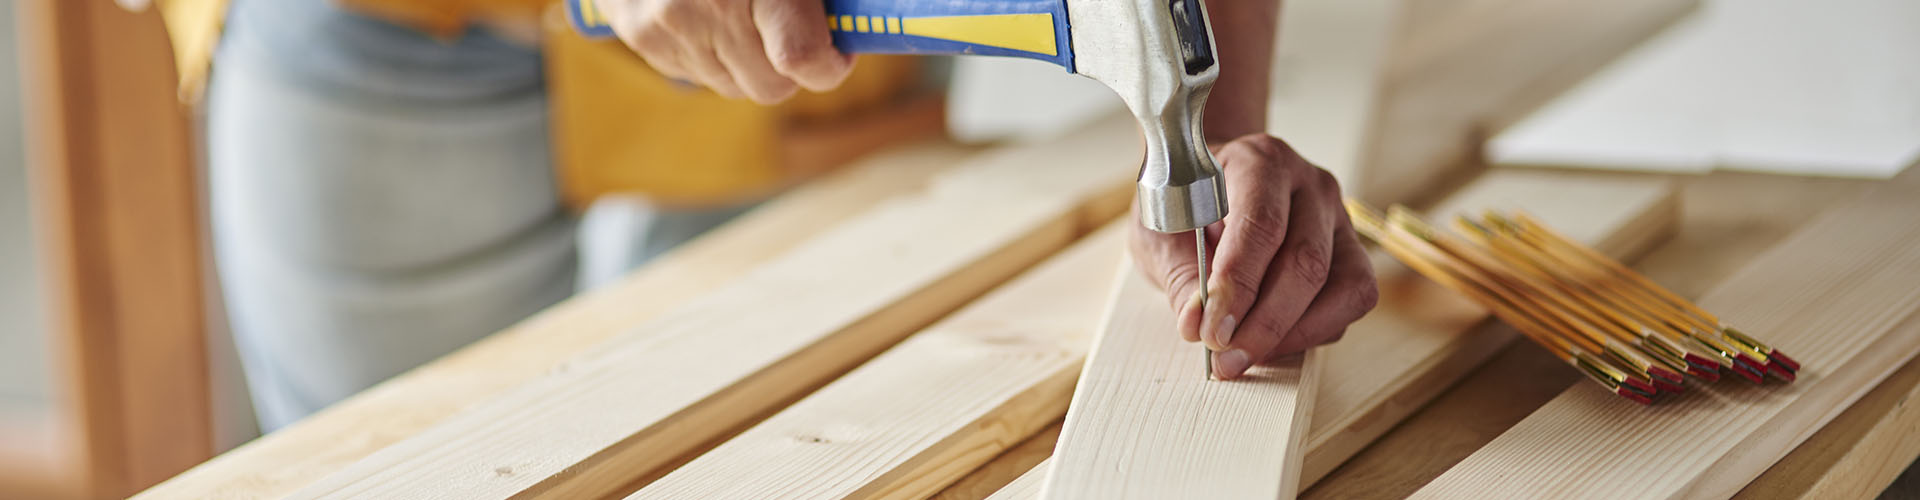 Hammering nails into wooden planks